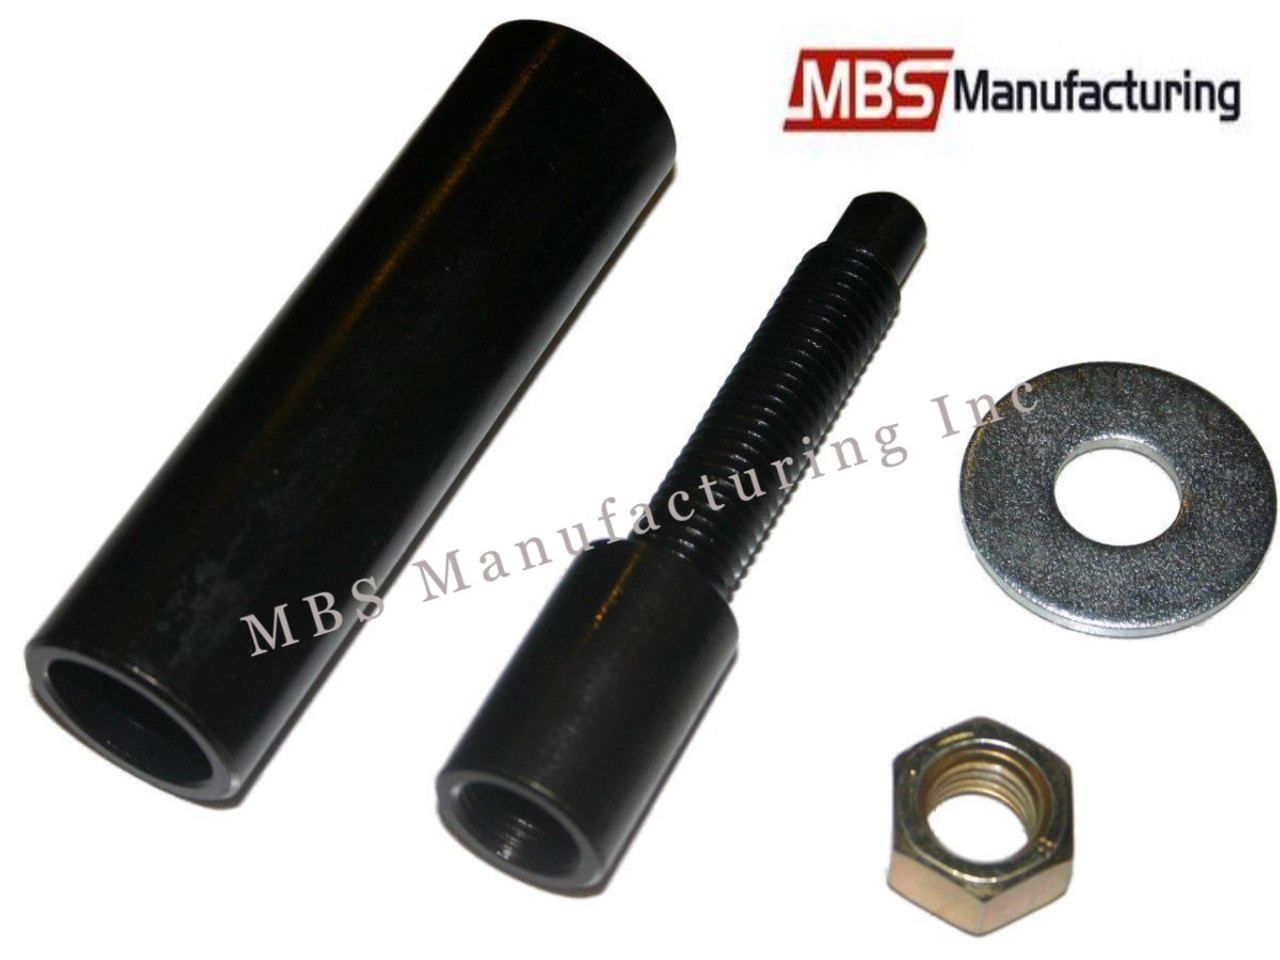 Replacement Lap Head Tool For Transmission for Harley Davidson by V-Twin